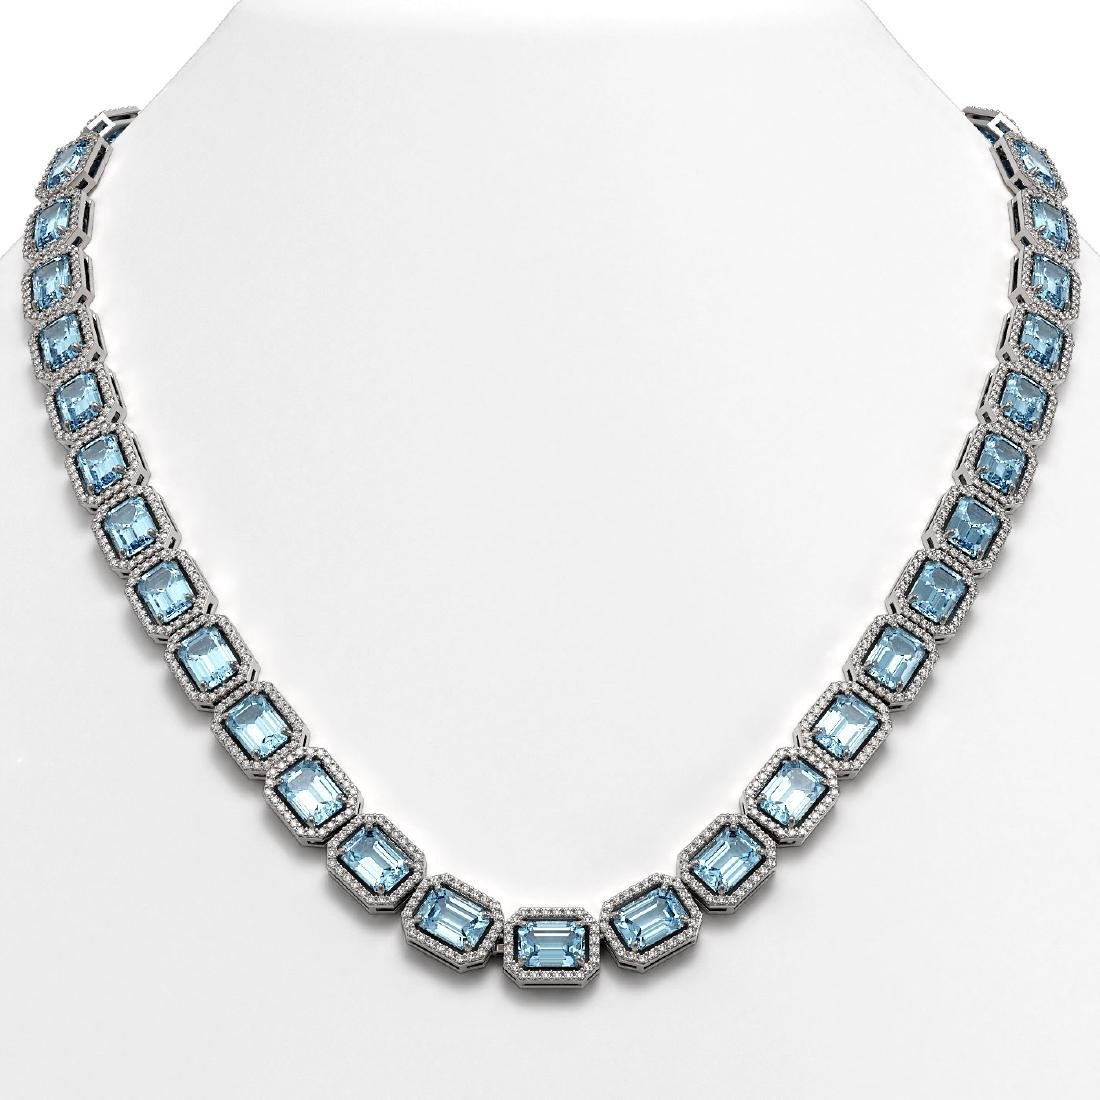 54.79 CTW Aquamarine & Diamond Halo Necklace 10K White